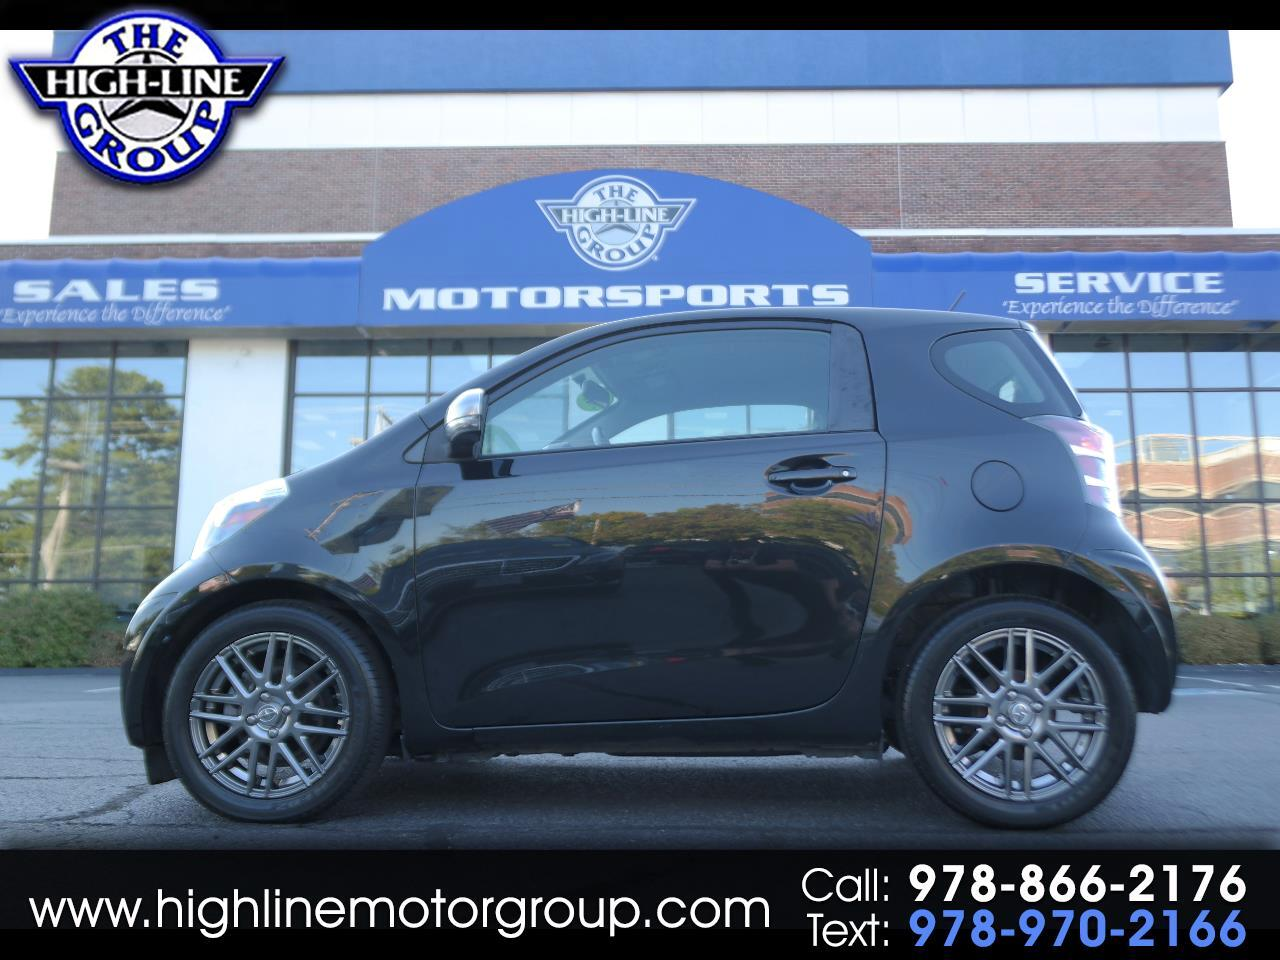 2012 Scion iQ 3dr HB (Natl)